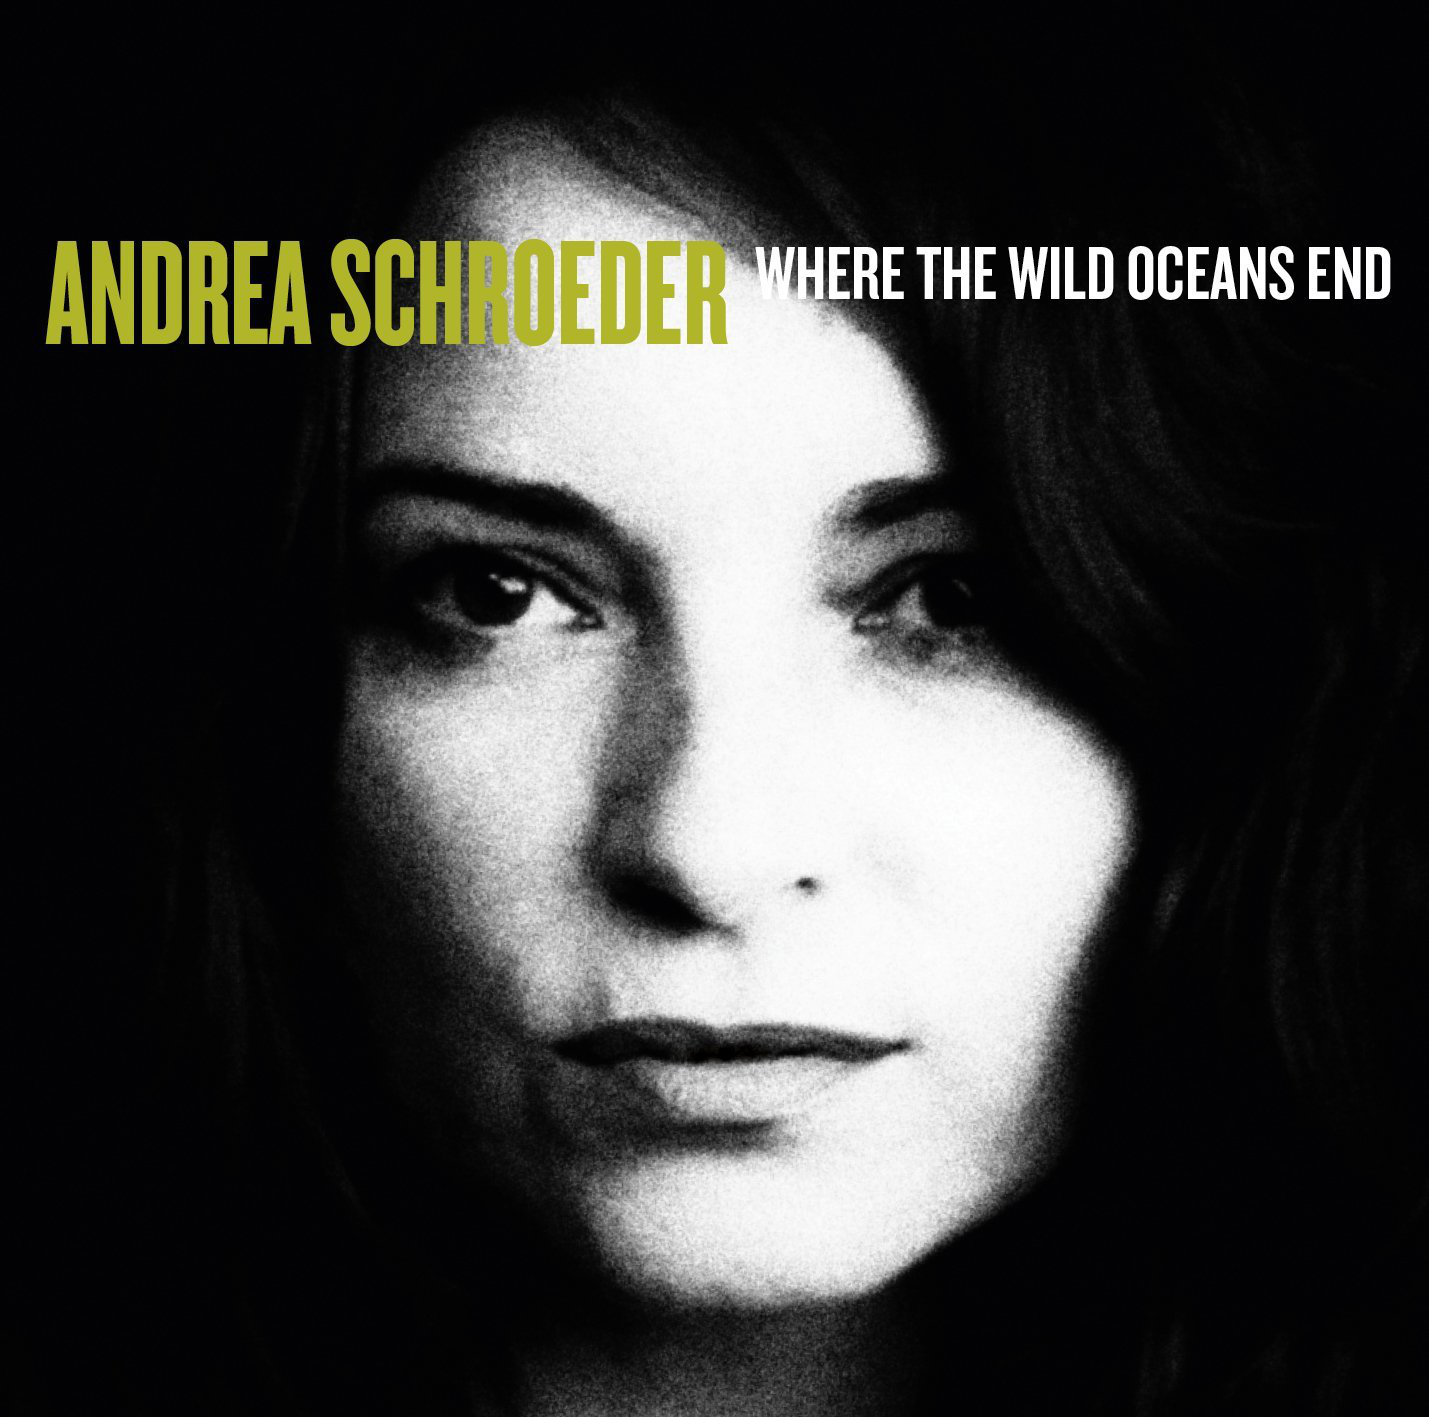 Andrea Schroeder - Where The Wild Oceans End